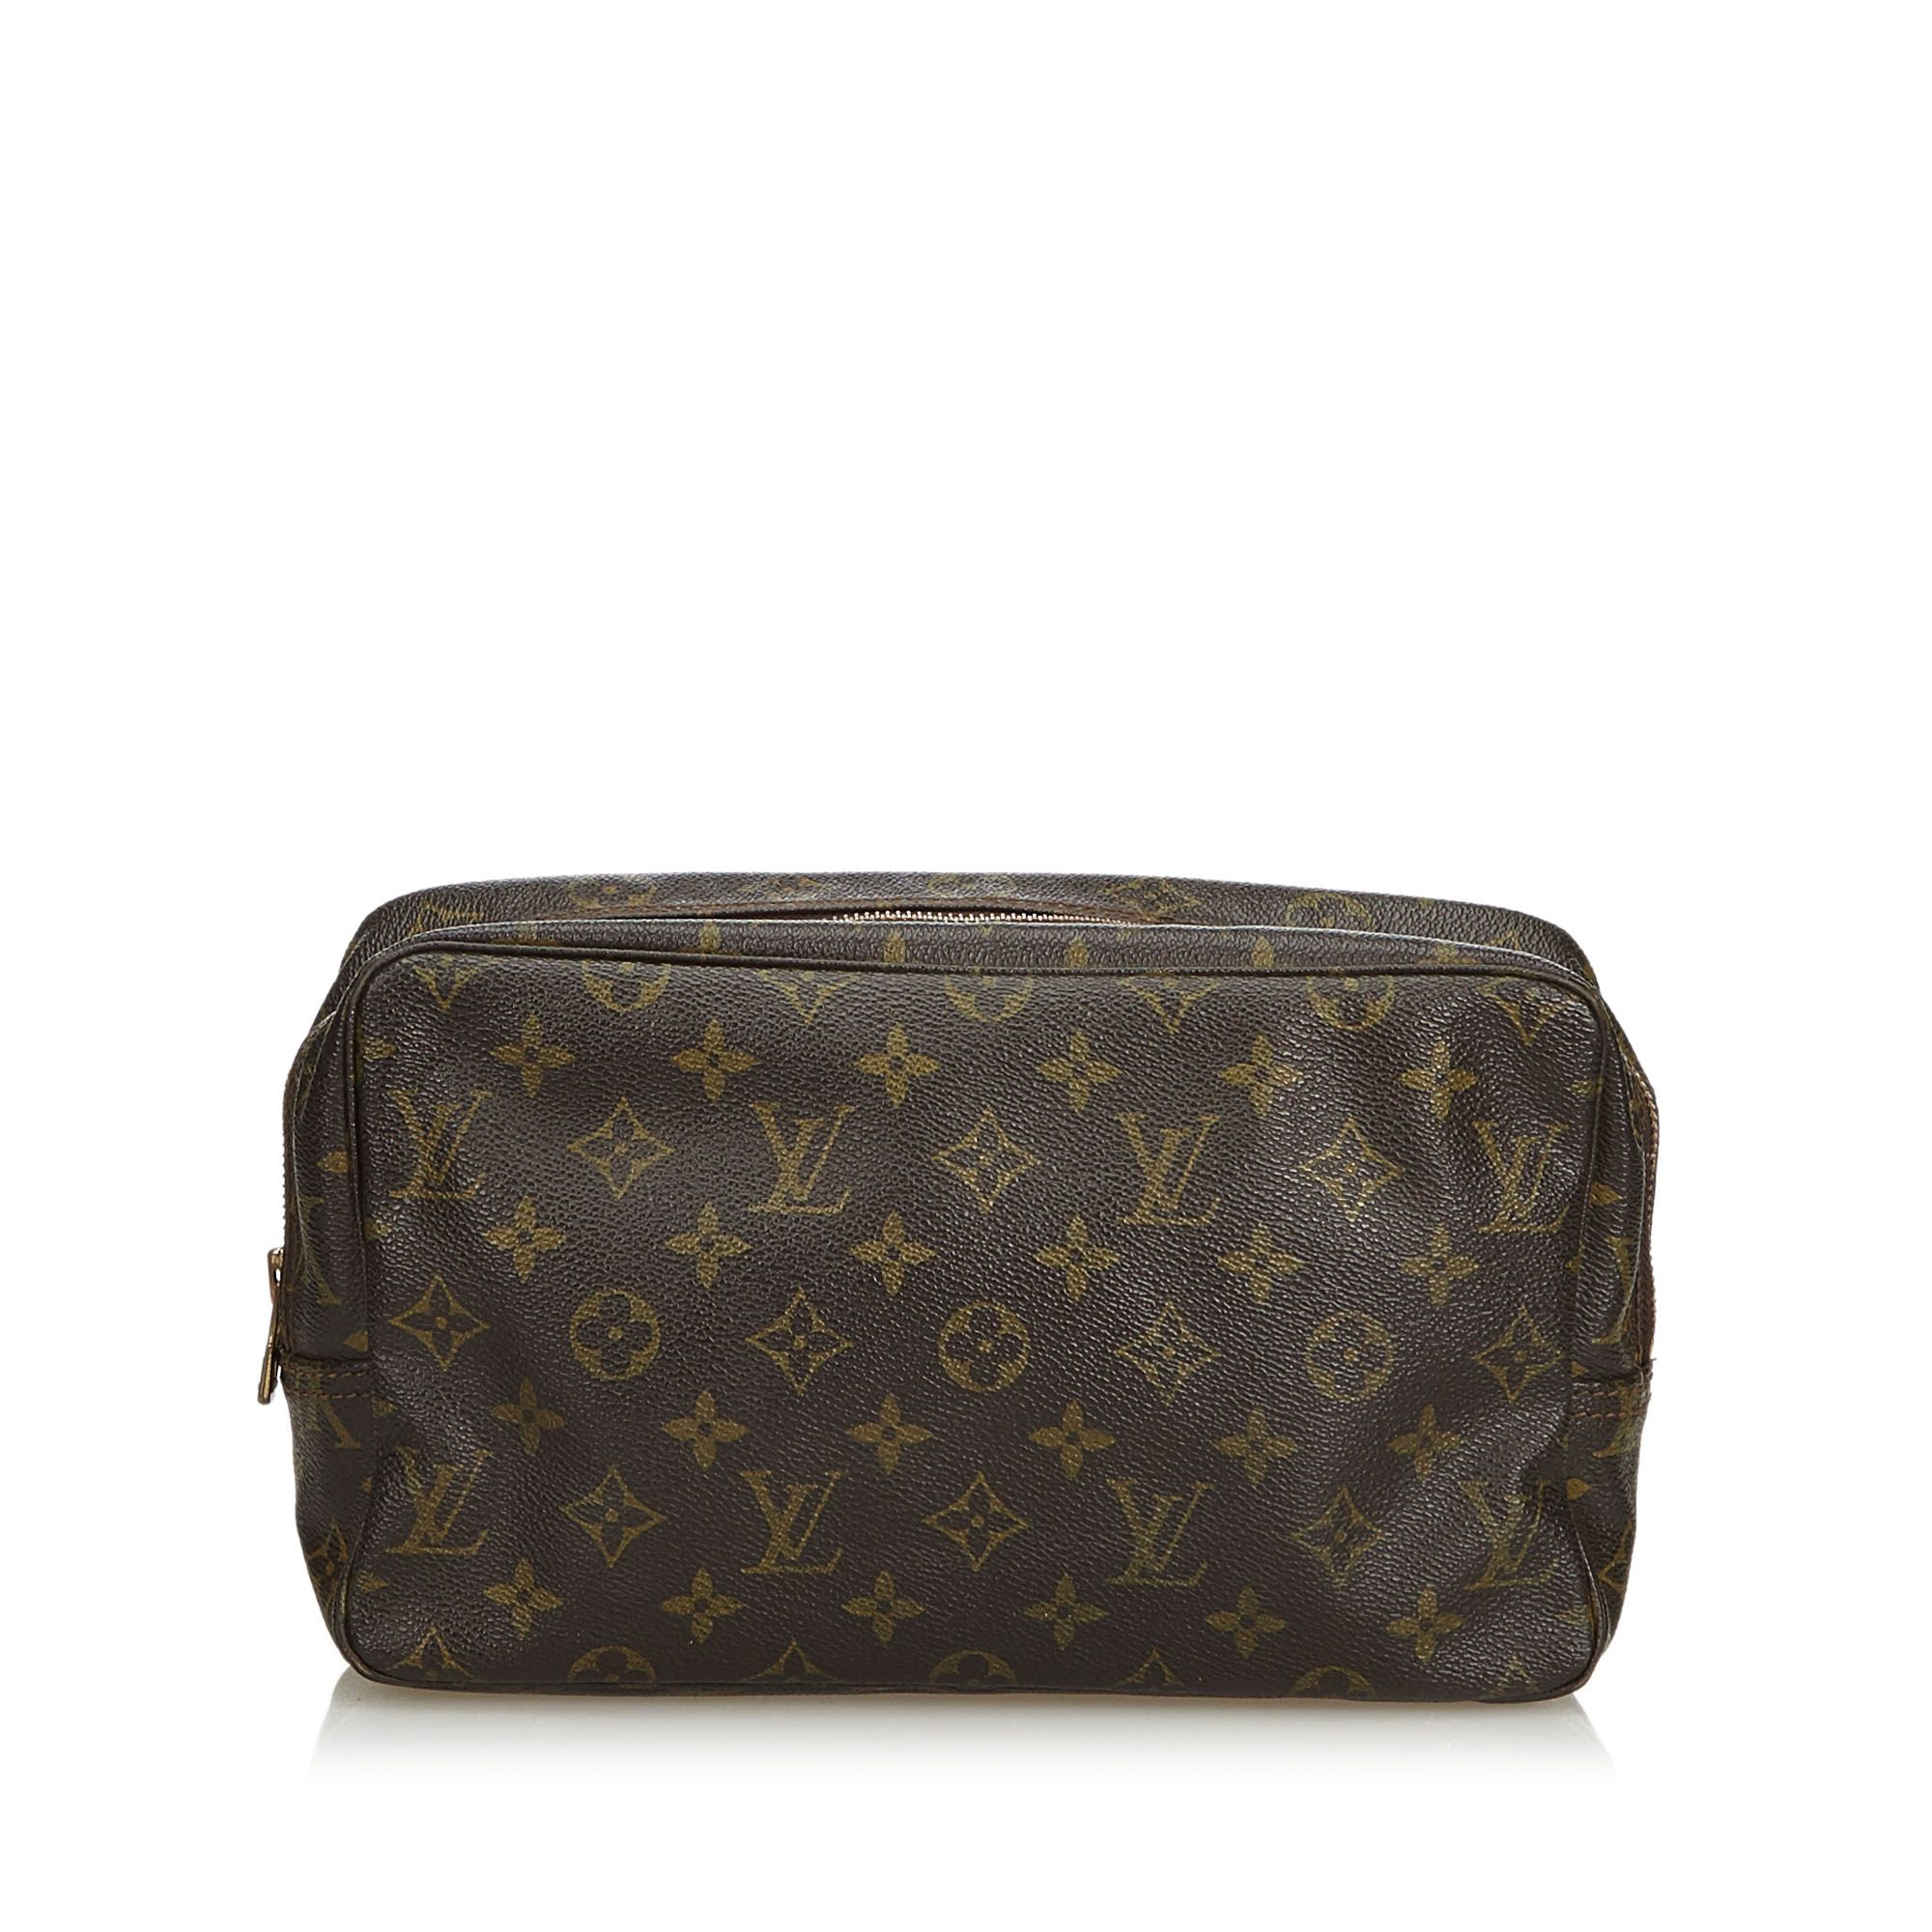 Vintage Louis Vuitton Monogram Trousse Toilette 28 Brown